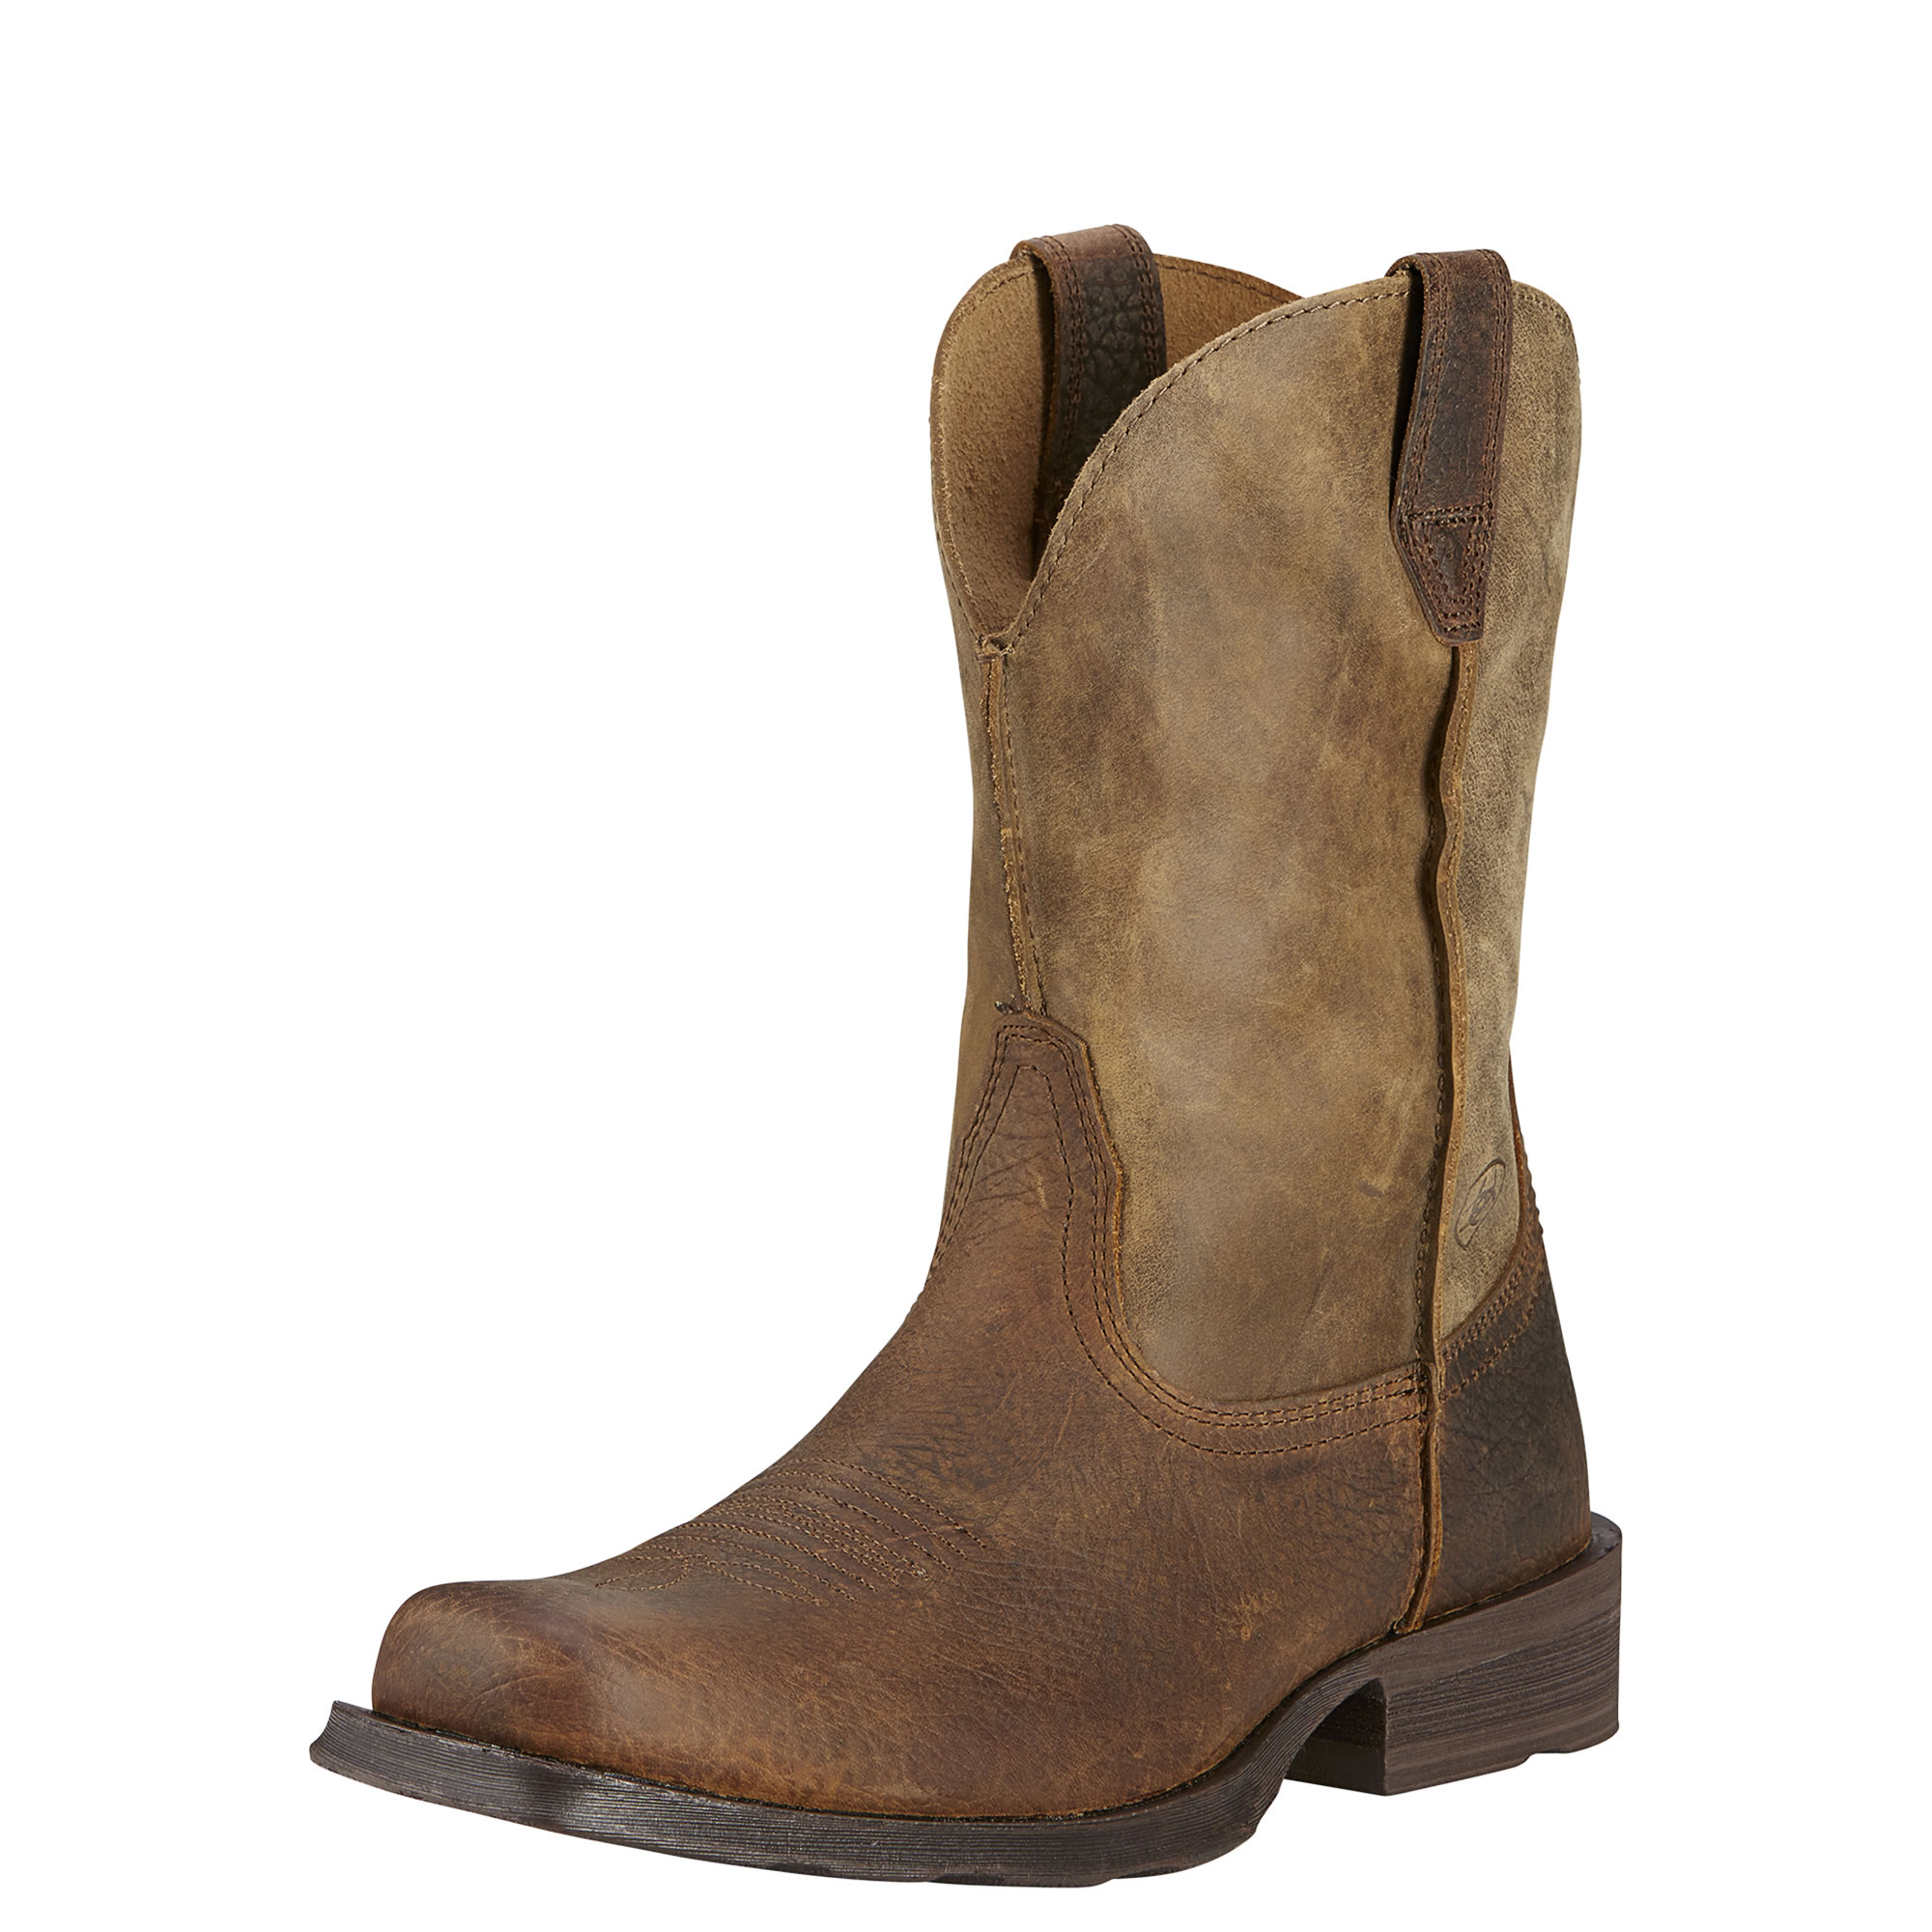 e1c73522eea Ariat Rambler Boots - Earth/Brown Bomber